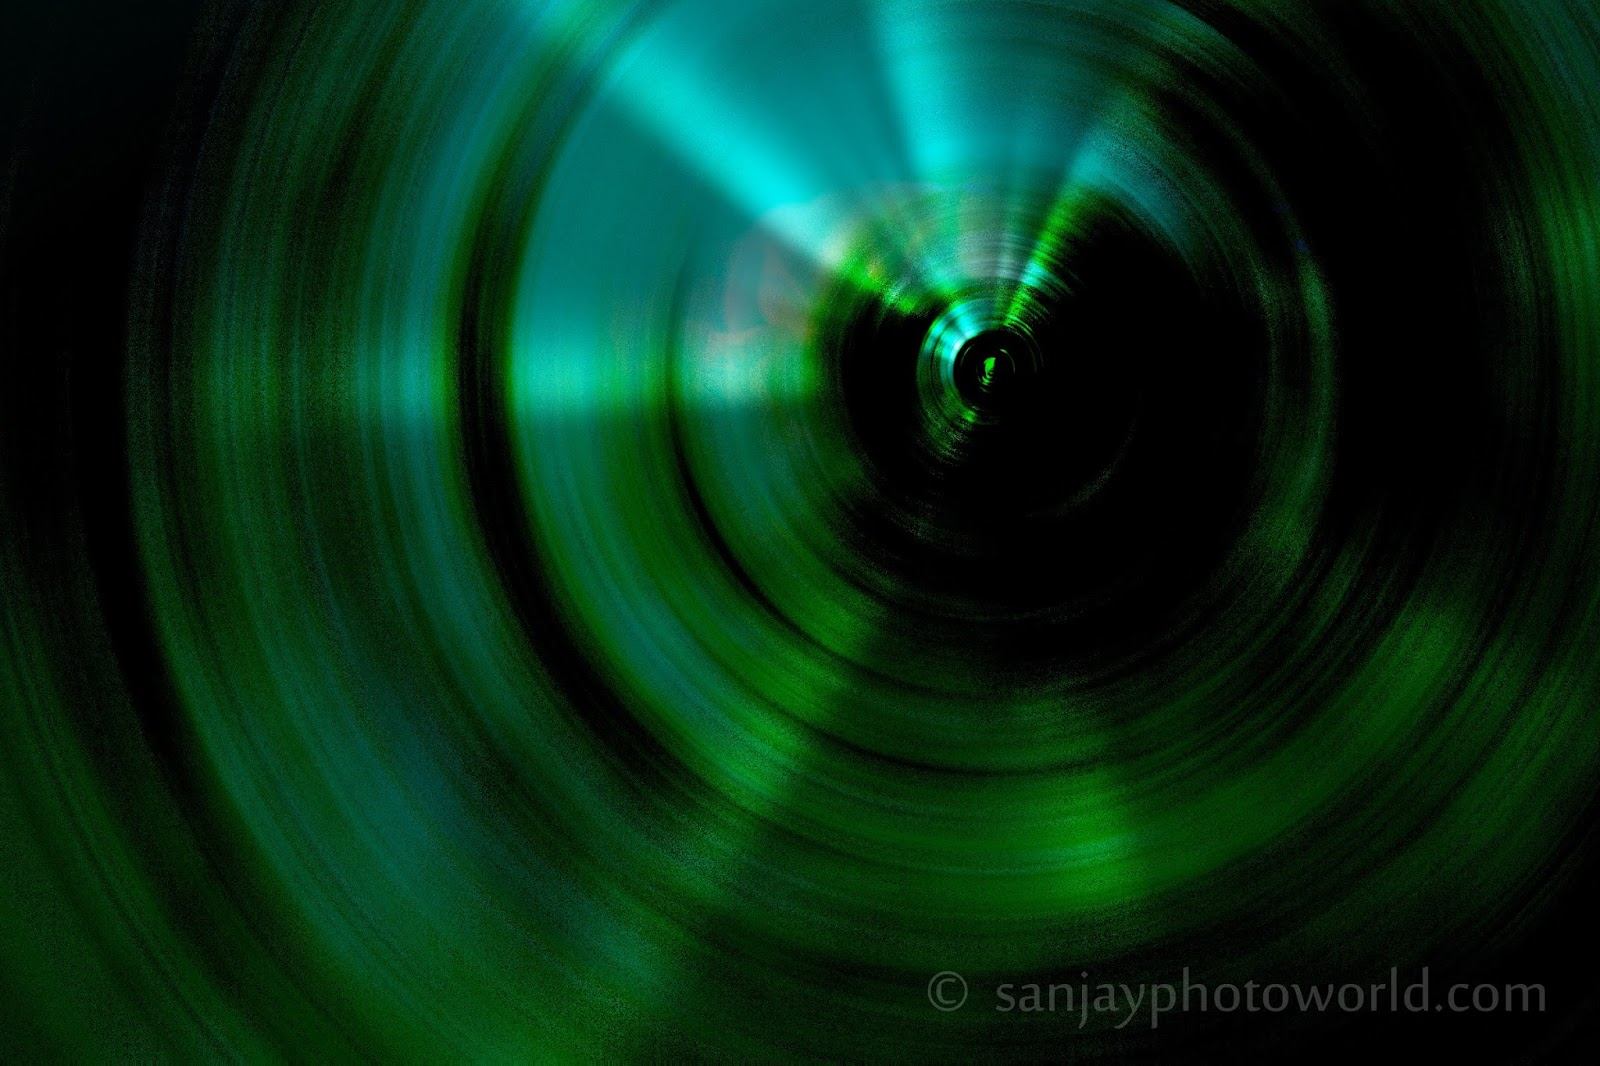 Lens Circle Lighting Effects HD Background Photoshop Digital Backgrounds 02